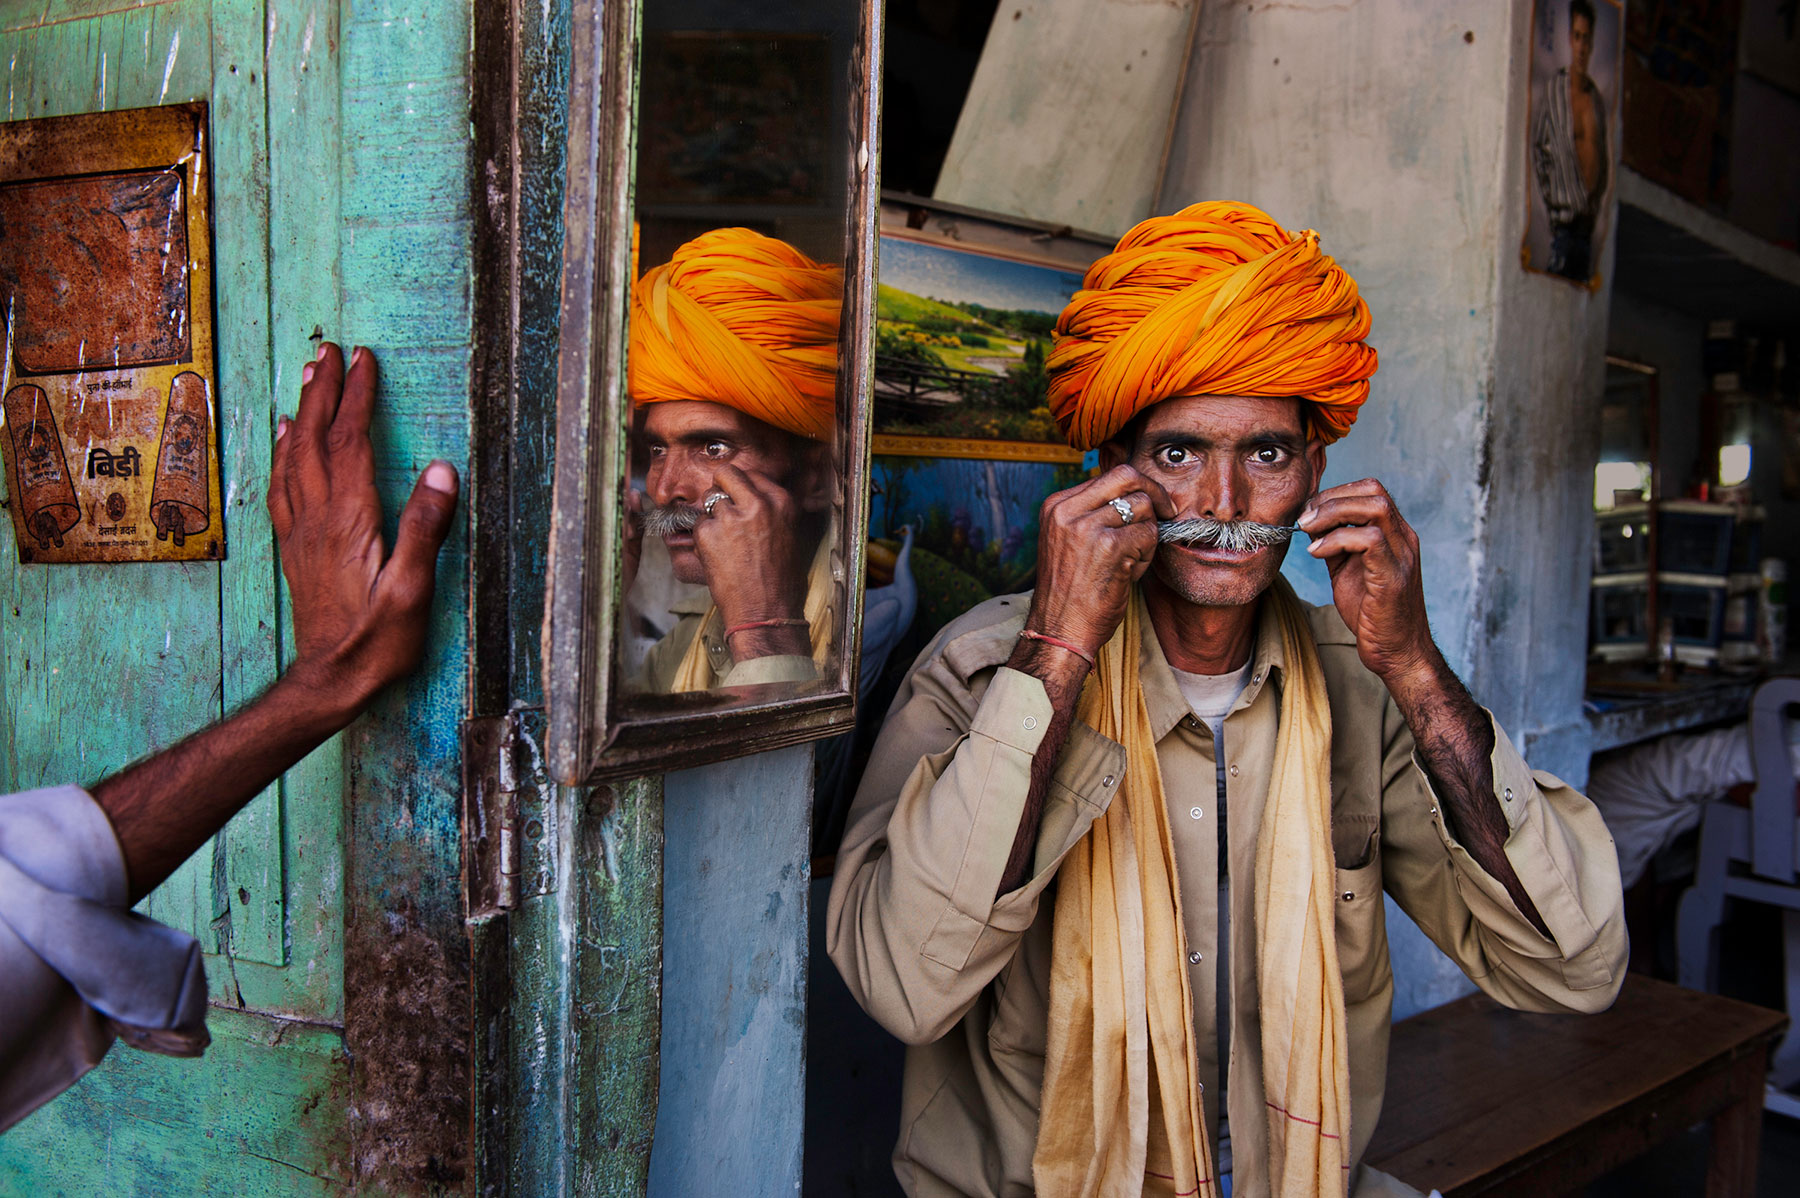 India. Photo by Steve McCurry.